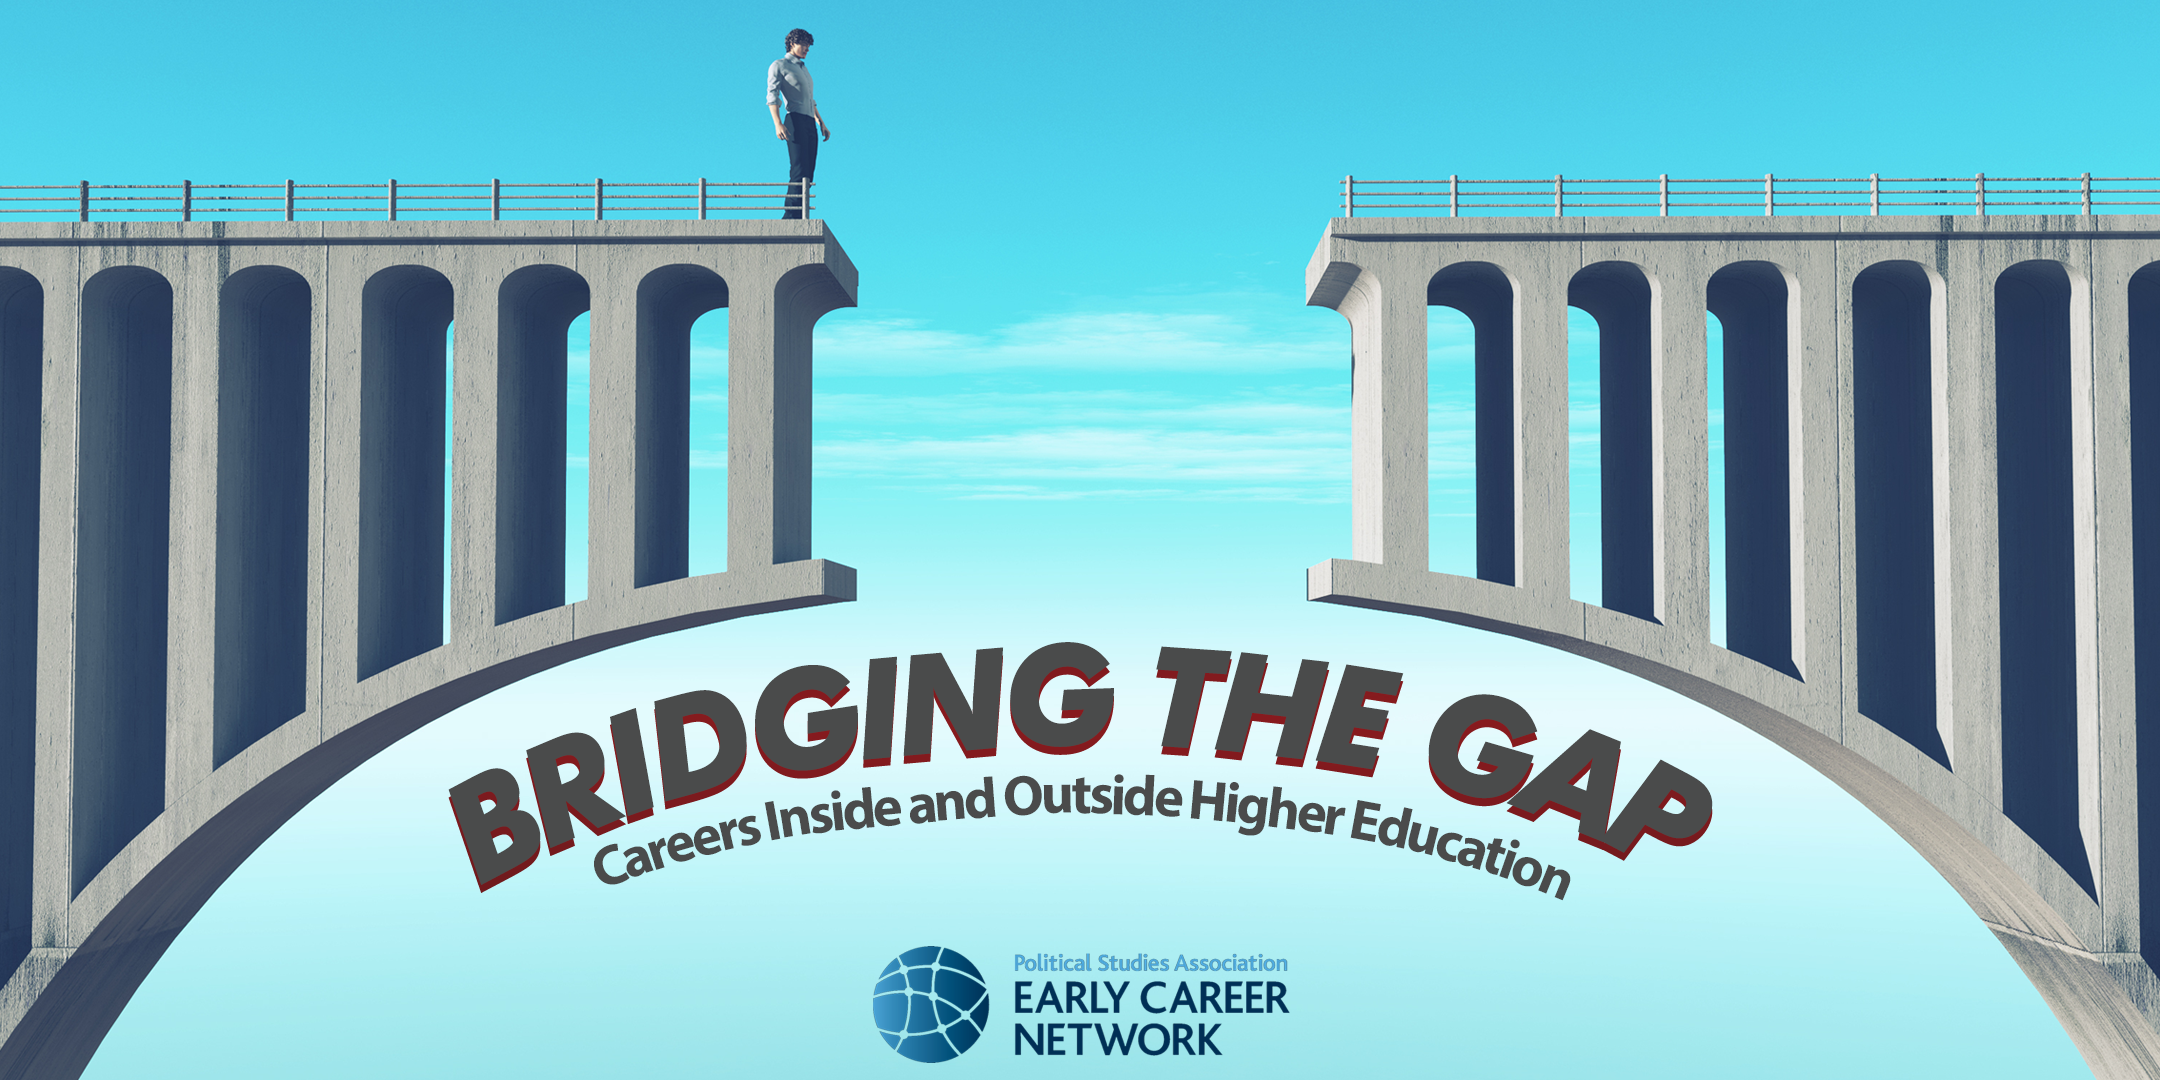 Six Things We Learned at The ECN's Bridging the Gap Conference | The Political Studies Association (PSA)